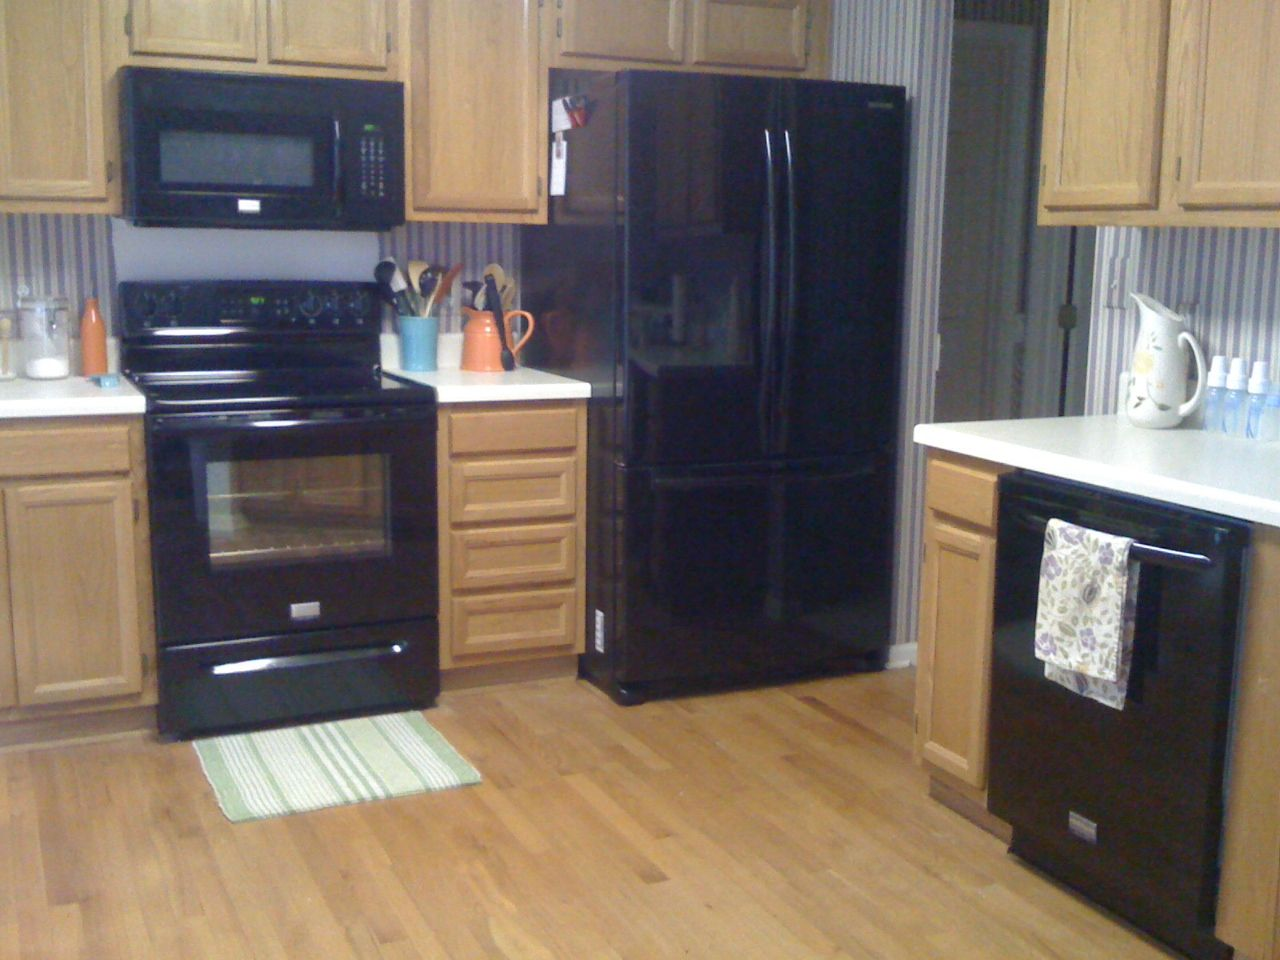 Kitchens With Black Appliances Kitchens With Black Appliances Photos Kitchen Appliances